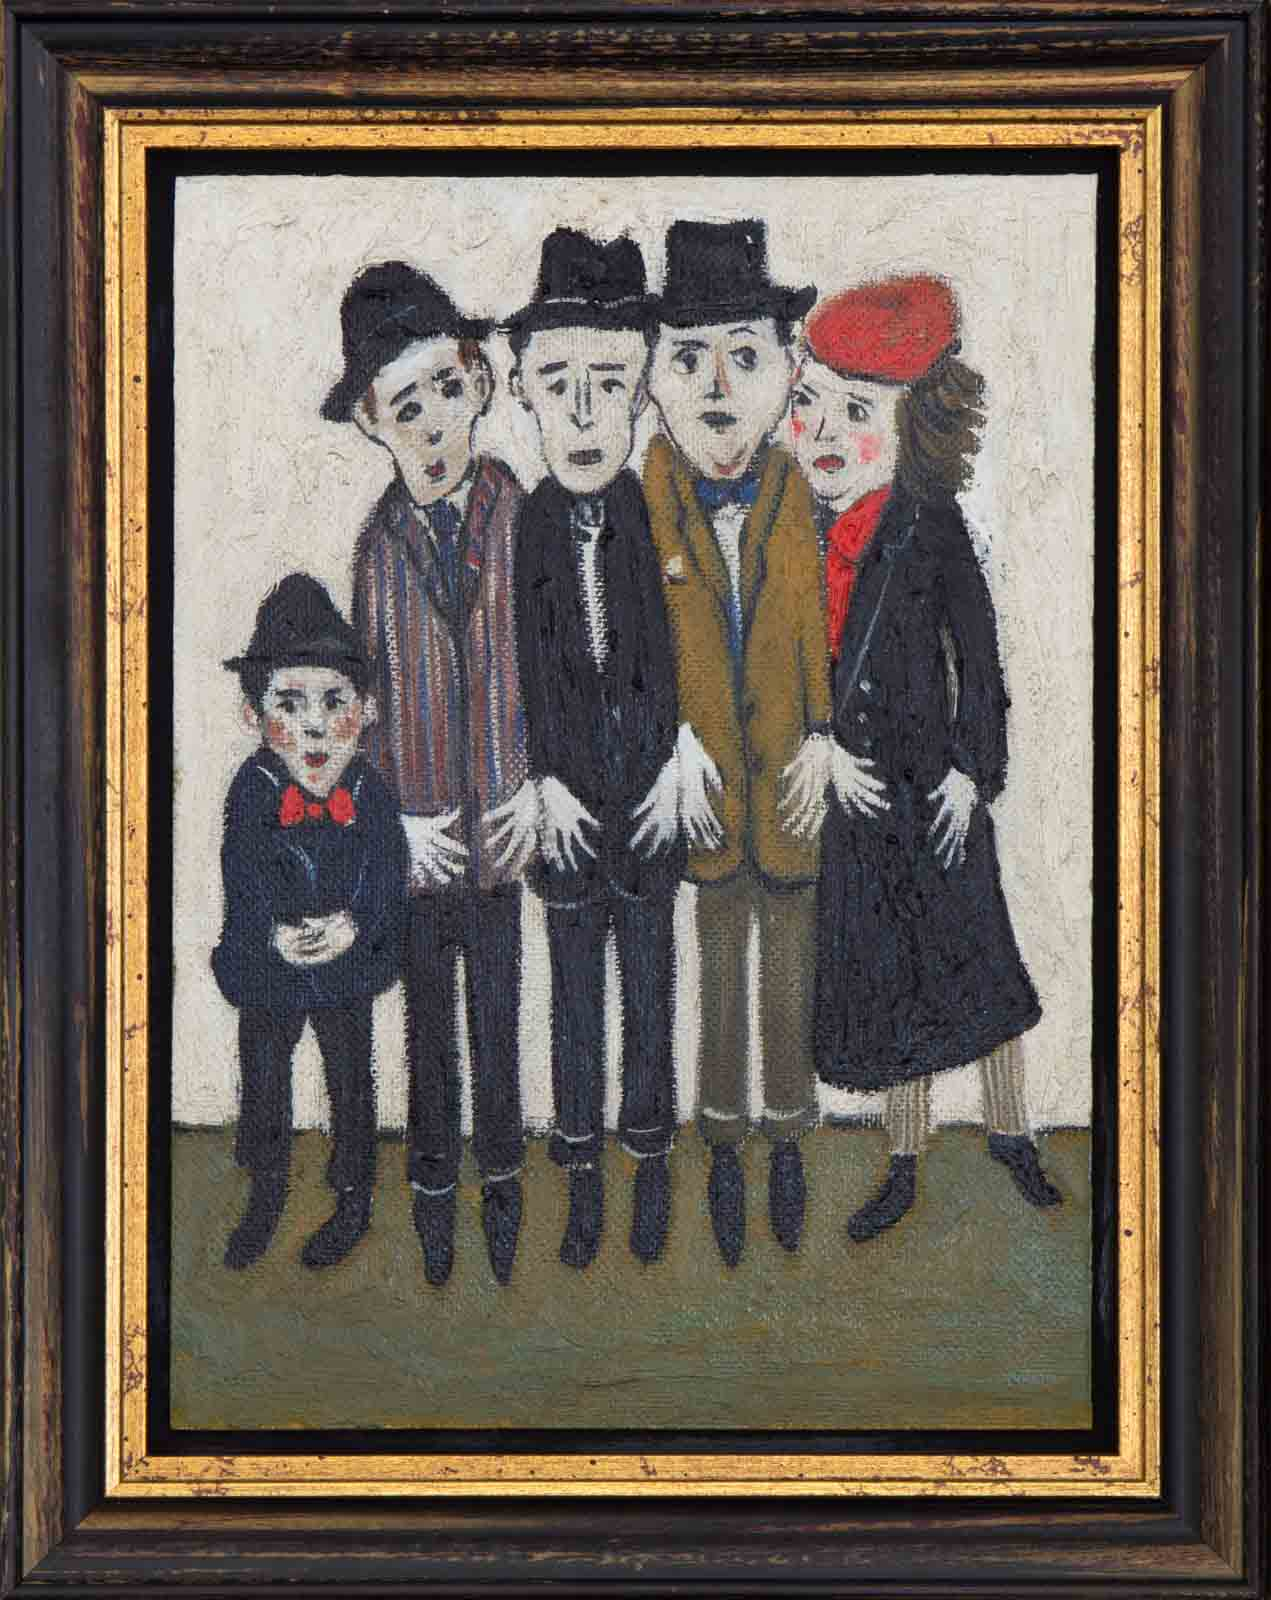 Family Day At The Seaside after L.S Lowry